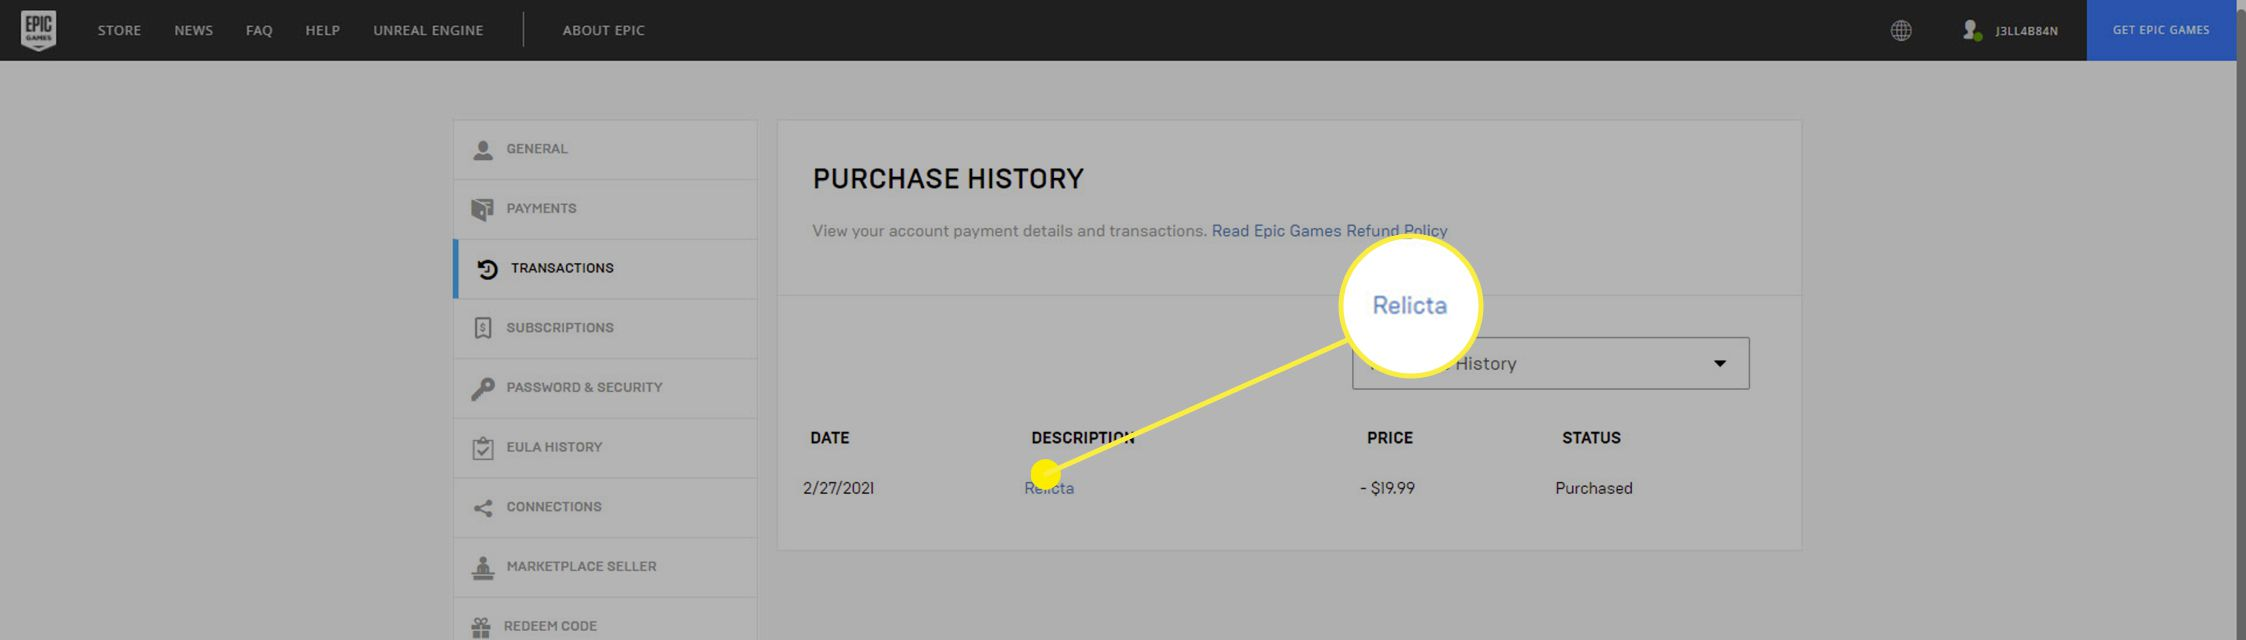 The Purchase History on the Epic Games Store.